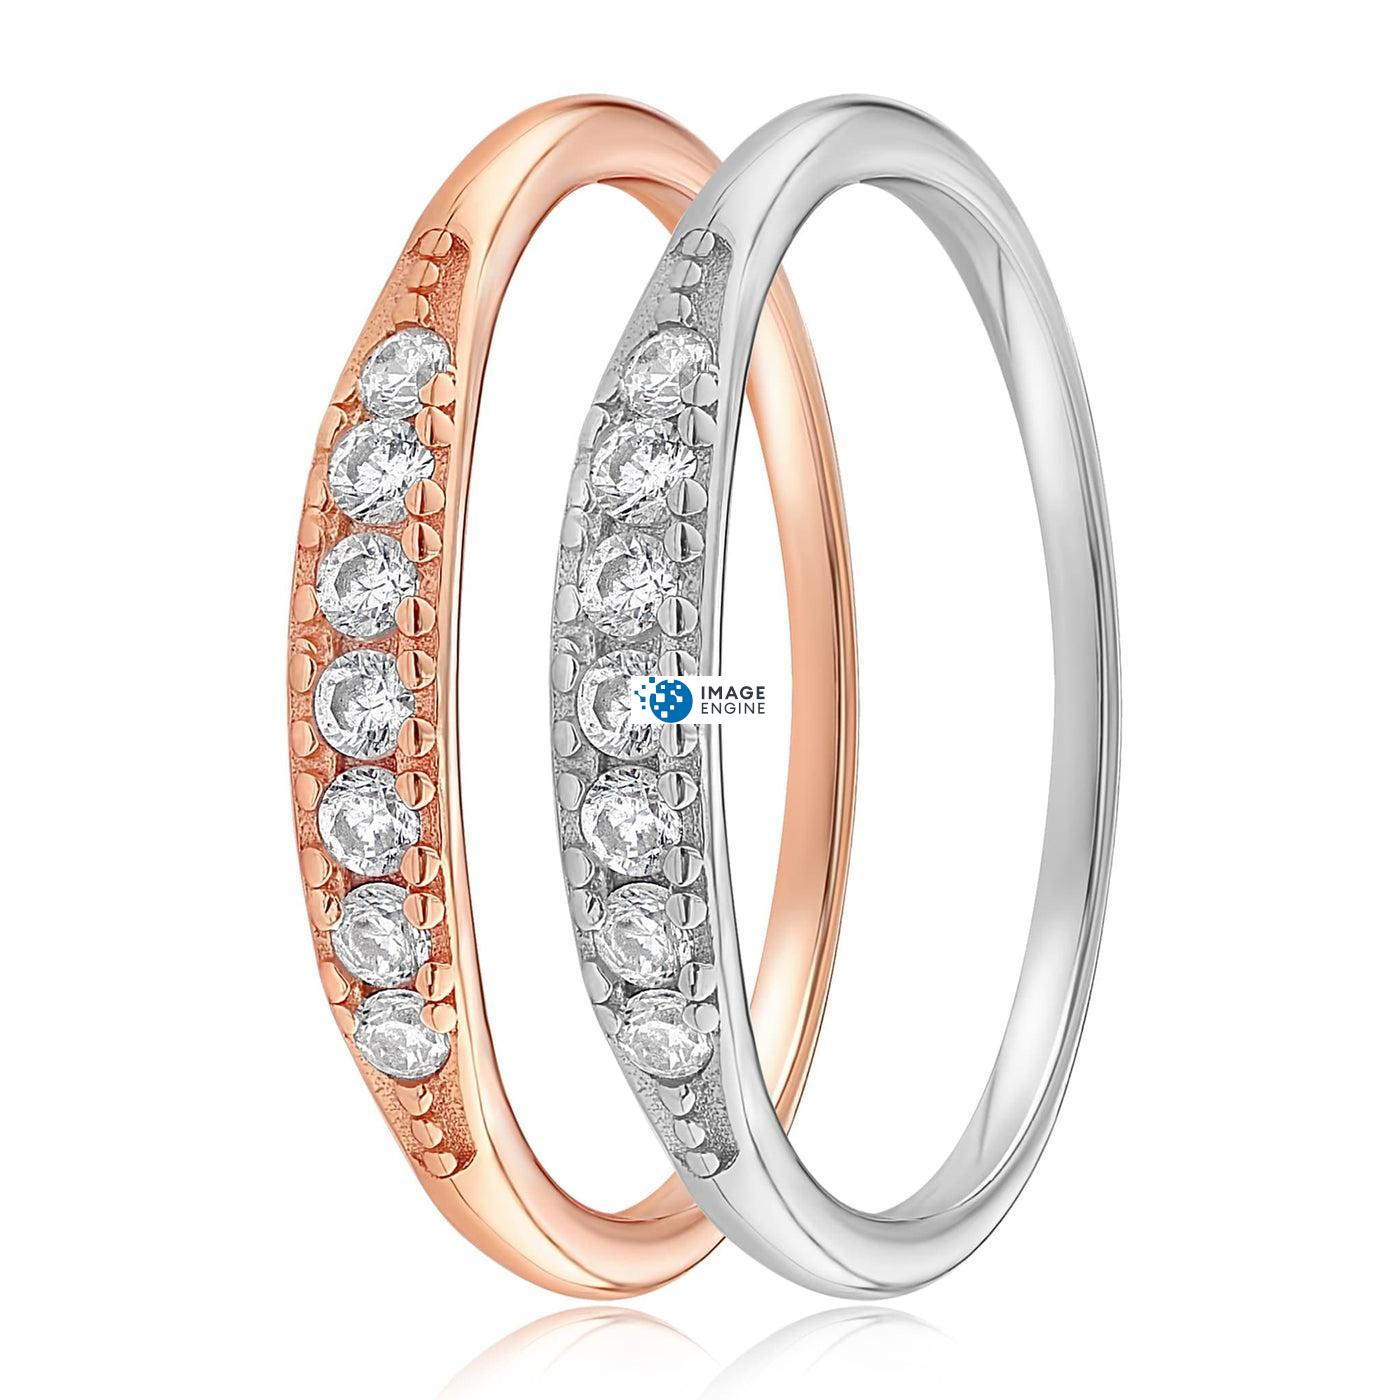 Kathleen Stack Ring - Side by Side - 925 Sterling Silver and 18K Rose Gold Vermeil